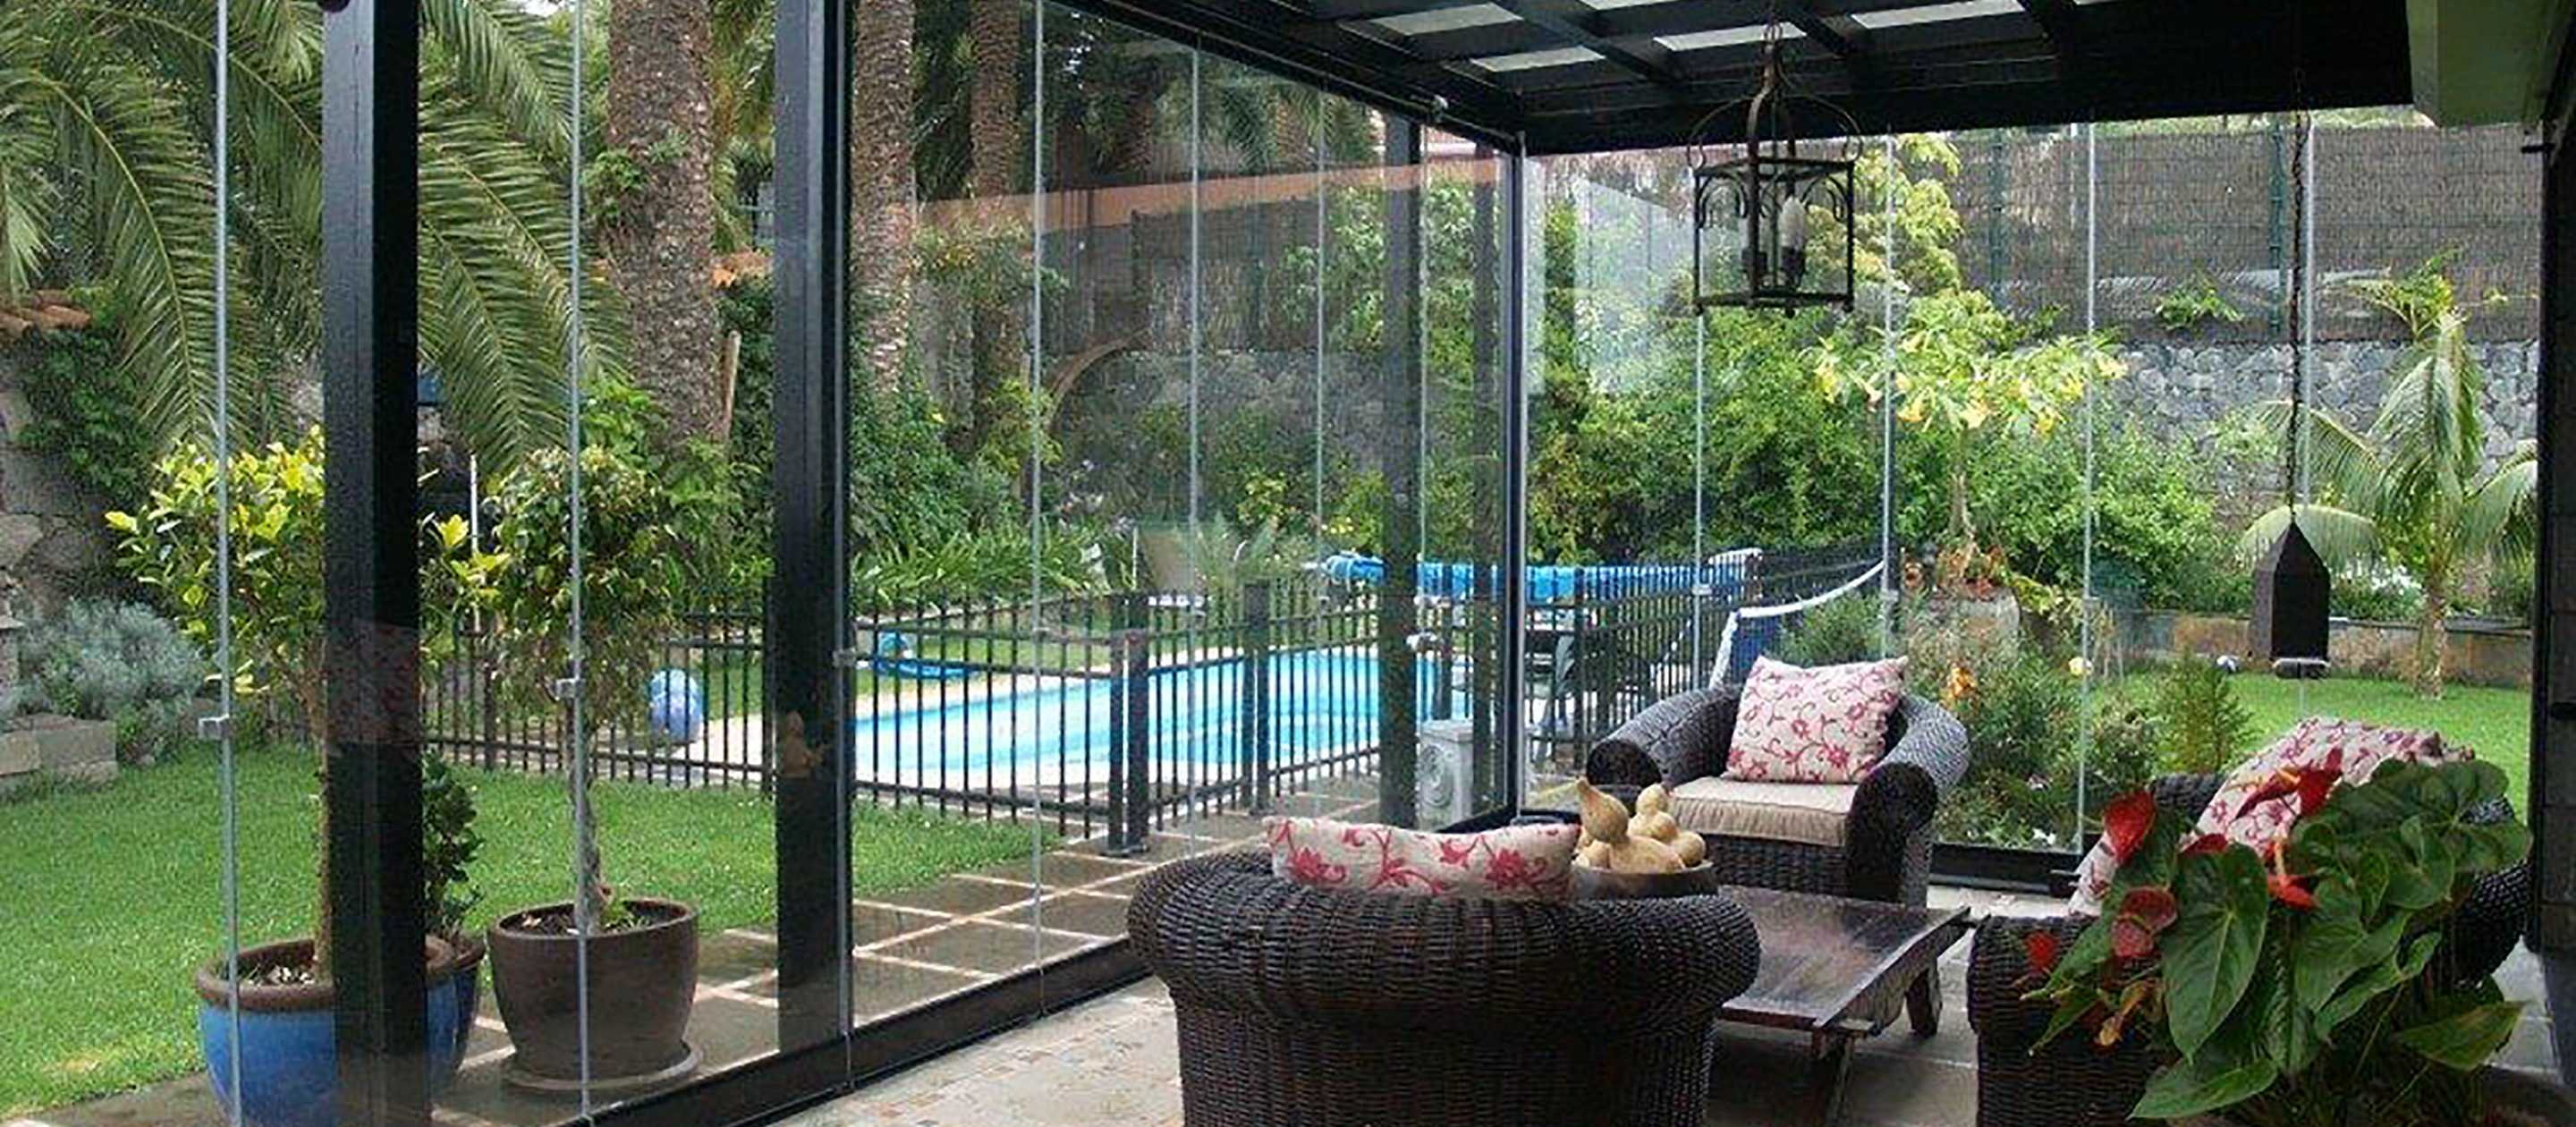 lumon canada, retractable glass walls, design from finland, sunroom toronto, sunroom vancouver, sunroom hamilton, outdoor living